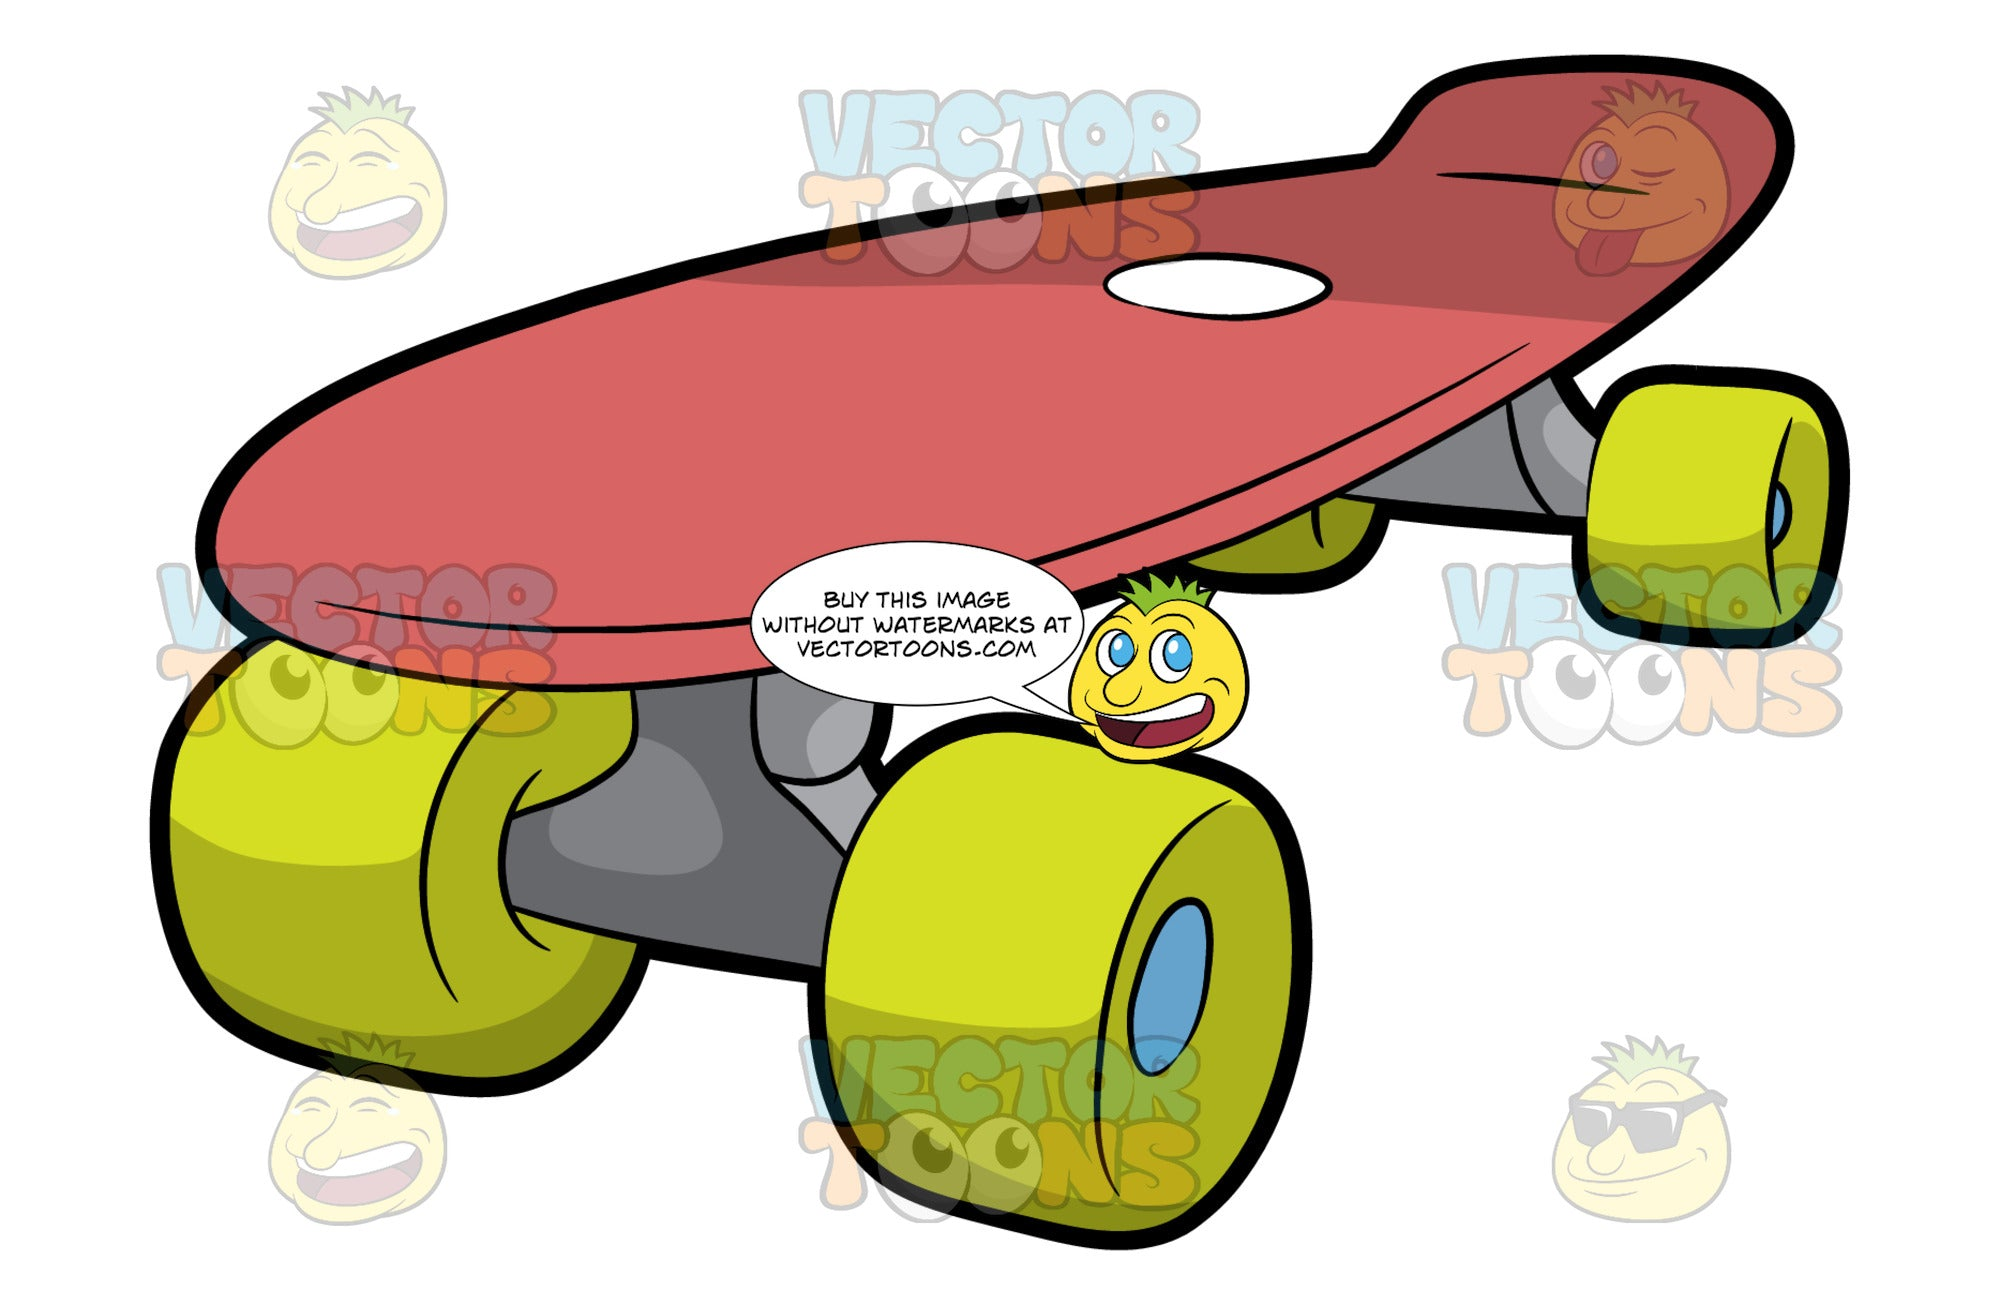 A Red Skateboard. A skateboard with red deck and a small round white print accent on top, steel gray trucks and neon green wheels with blue bearings